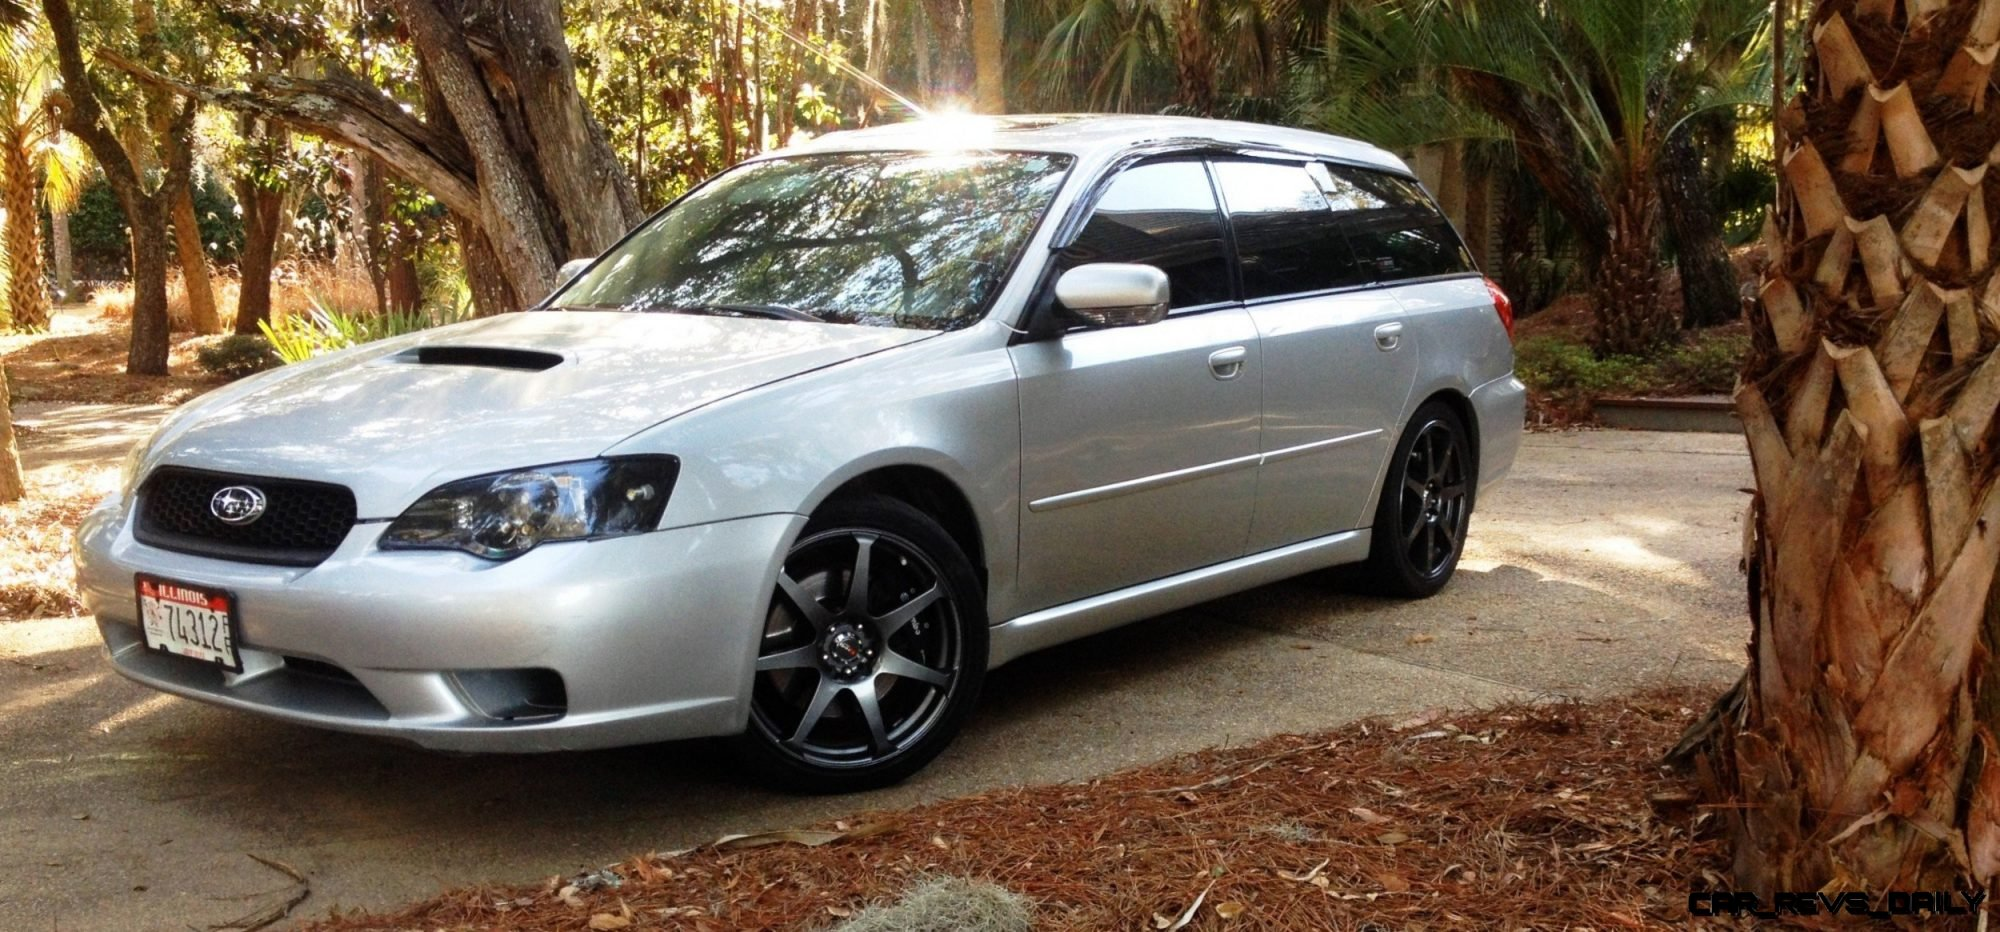 My Car In Detailed Turntable Animations + 30 Photos -- 2006 Subaru Legacy GT Limited  3